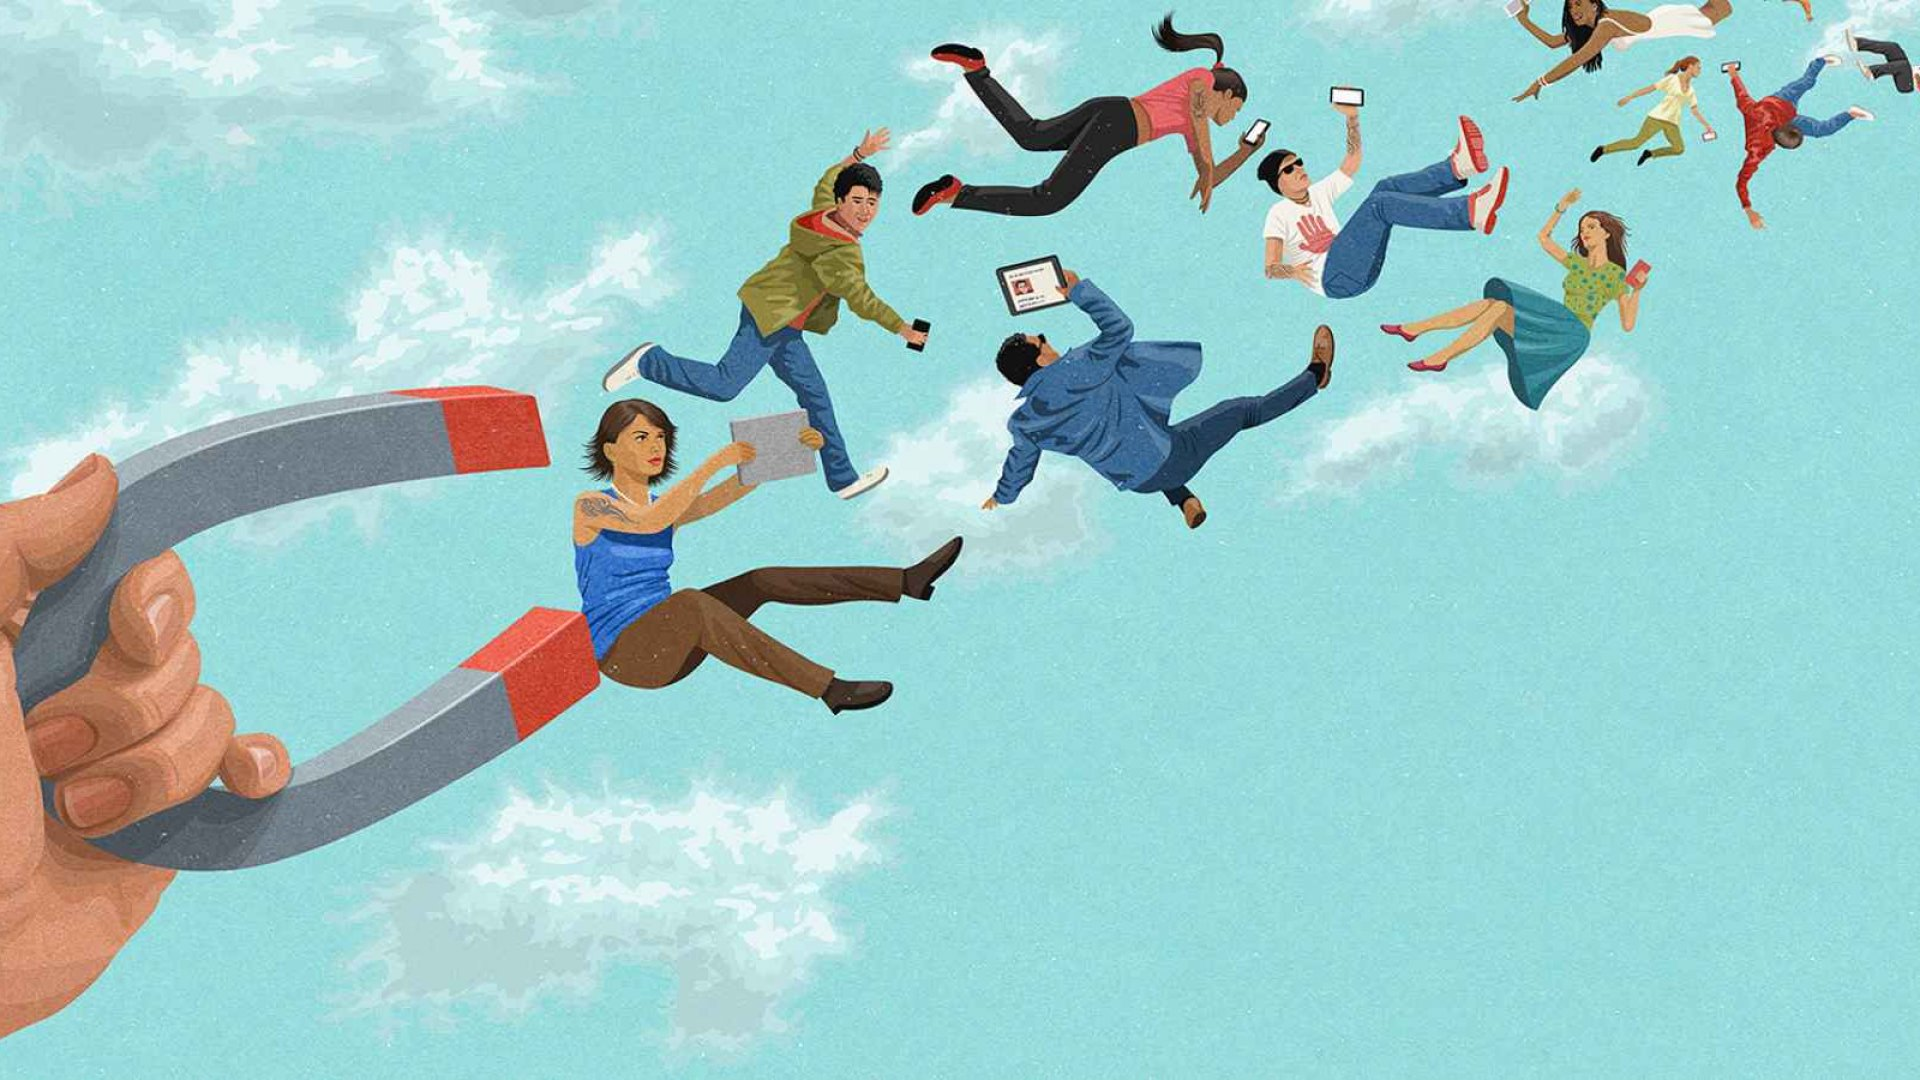 70 Percent of Companies Will Eventually See Unengaged Employees. Here Are 6 Ways to Prevent It